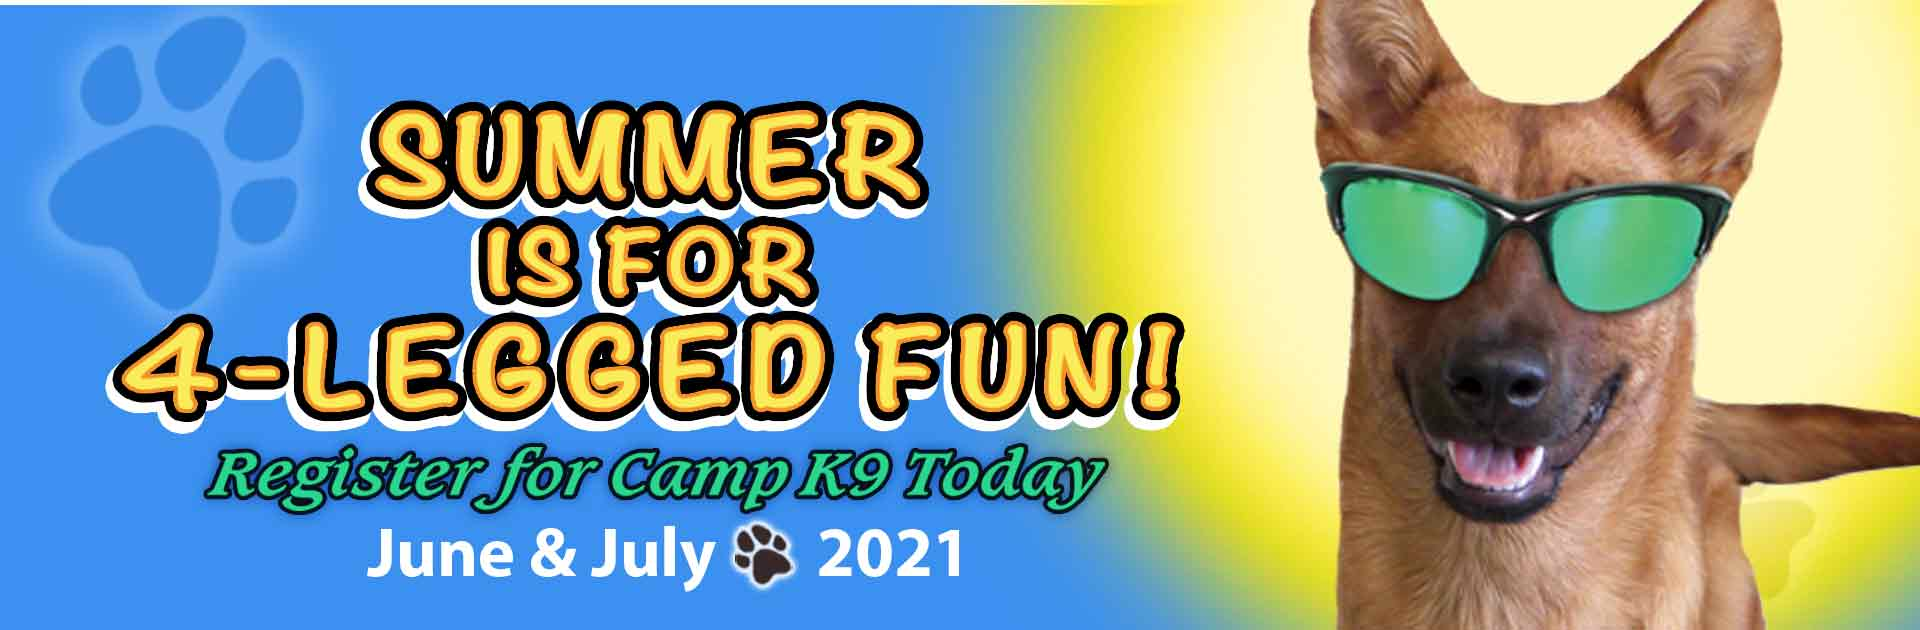 Summer is for 4-legged fun! Register for Camp K9 Today June &July 2021